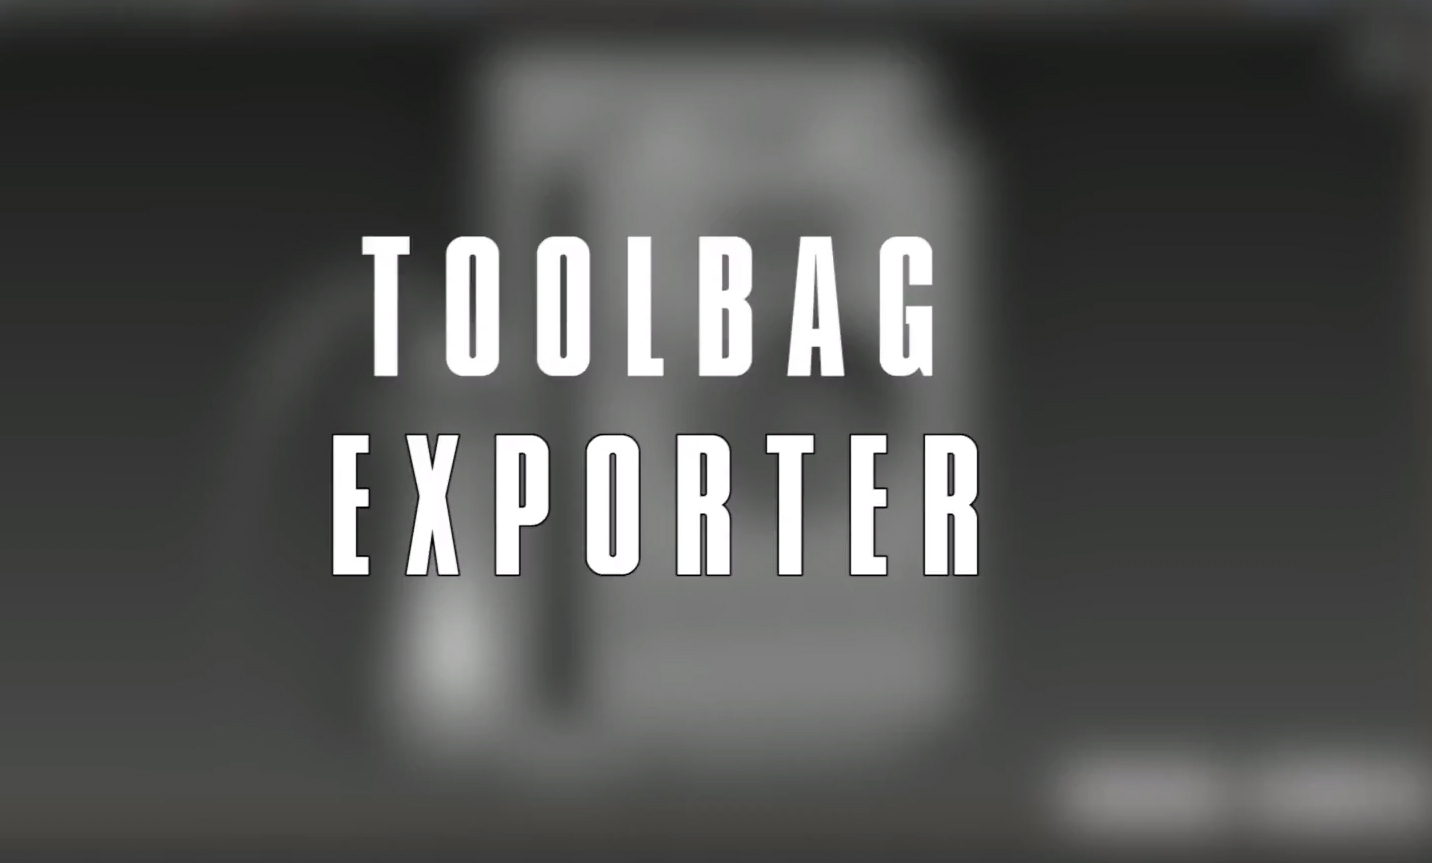 Toolbag Exporter, by Marvin Jimenez